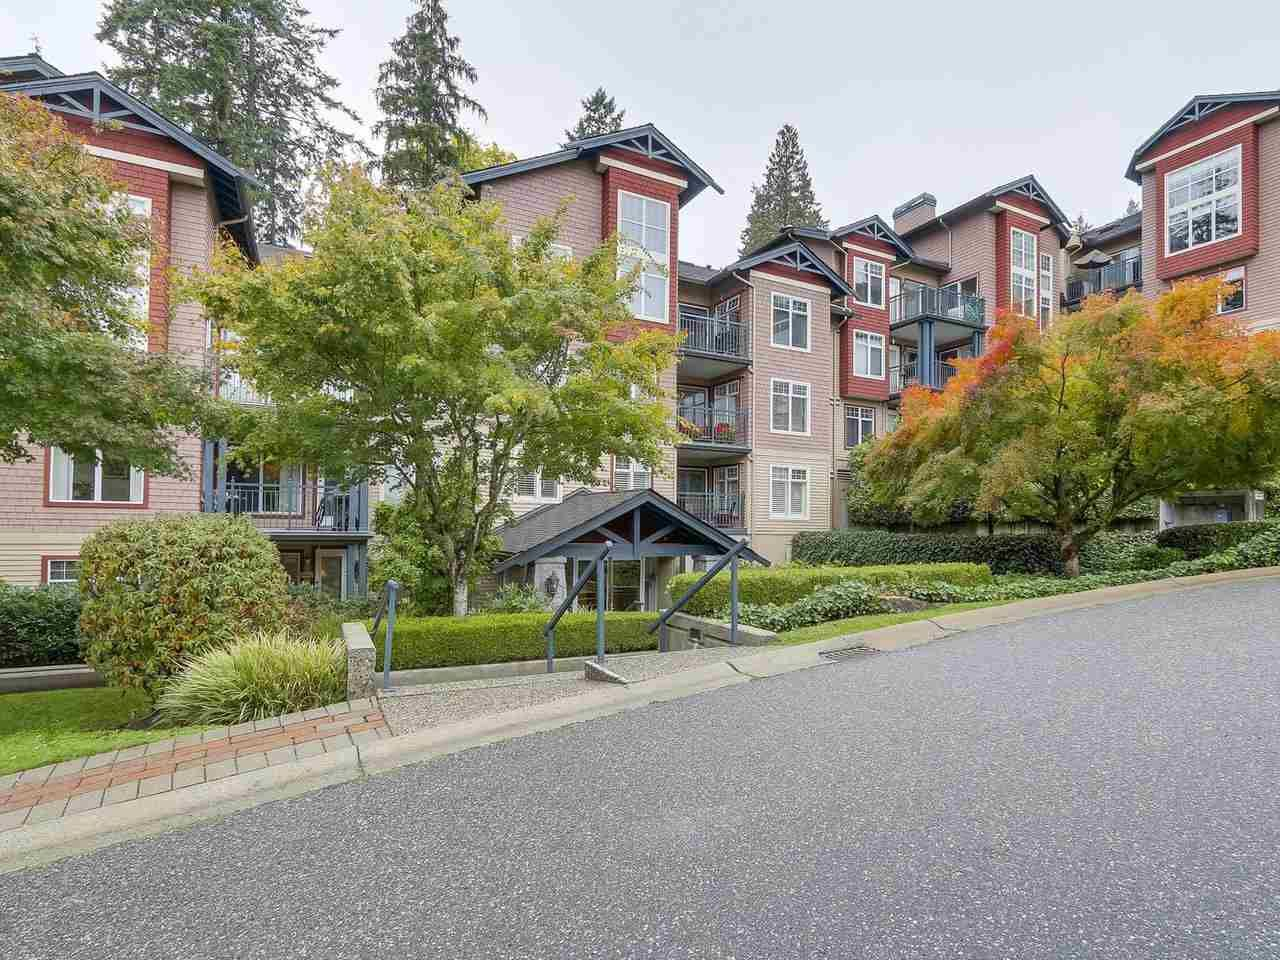 """Main Photo: 206 1144 STRATHAVEN Drive in North Vancouver: Northlands Condo for sale in """"Strathaven"""" : MLS®# R2217915"""